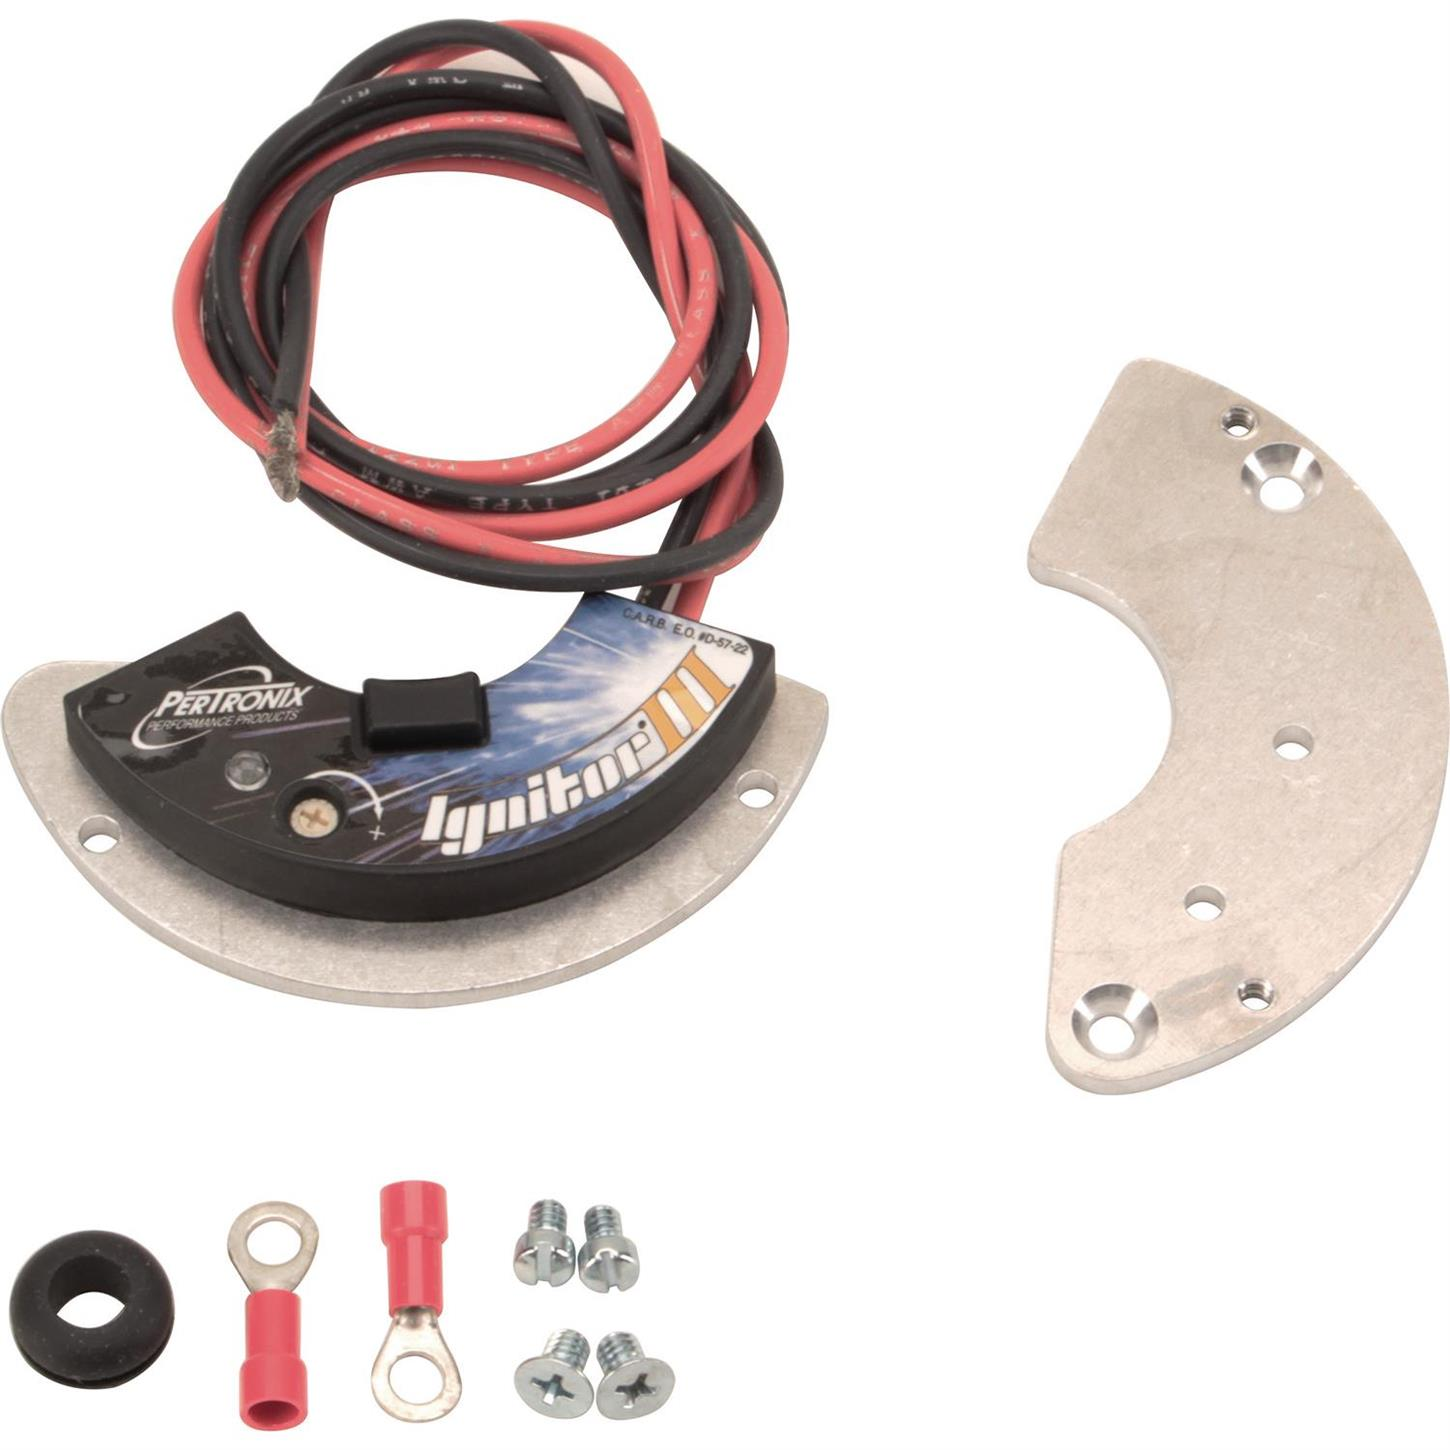 PerTronix 71181 Ignitor III Solid-State Distributor Ignition ModuleSpeedway Motors